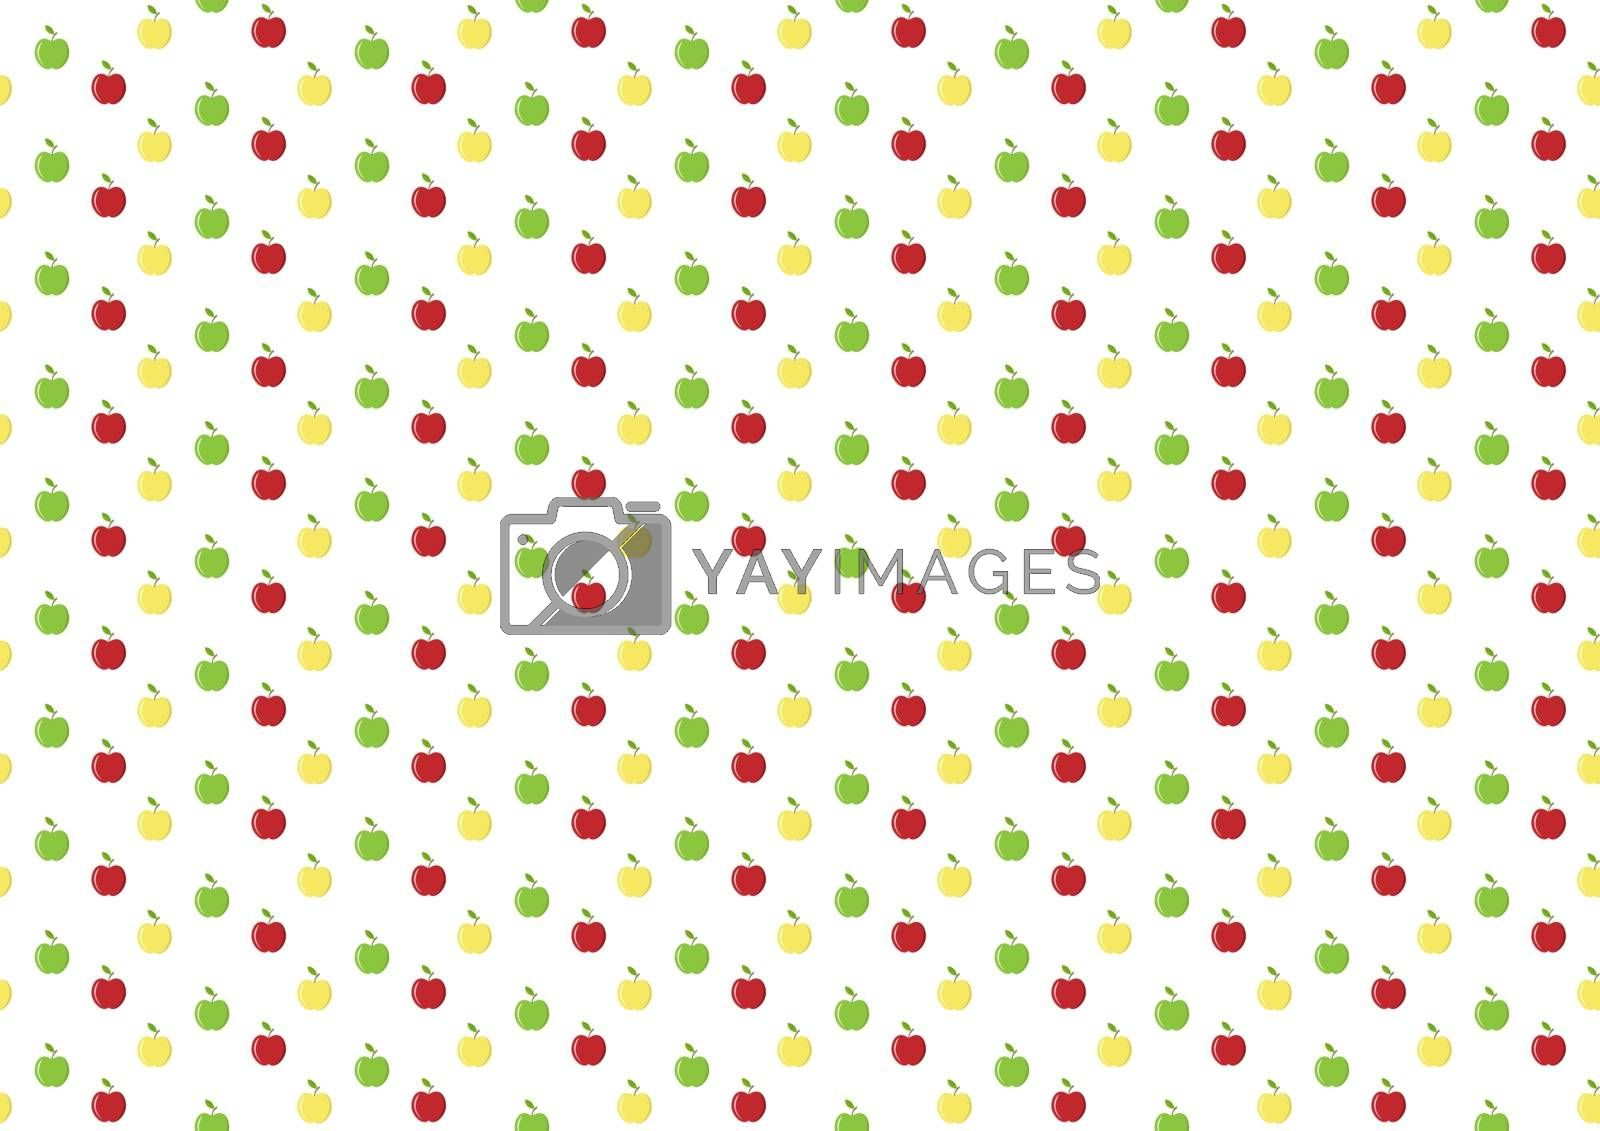 Abstract simple Apple background, simple flat design